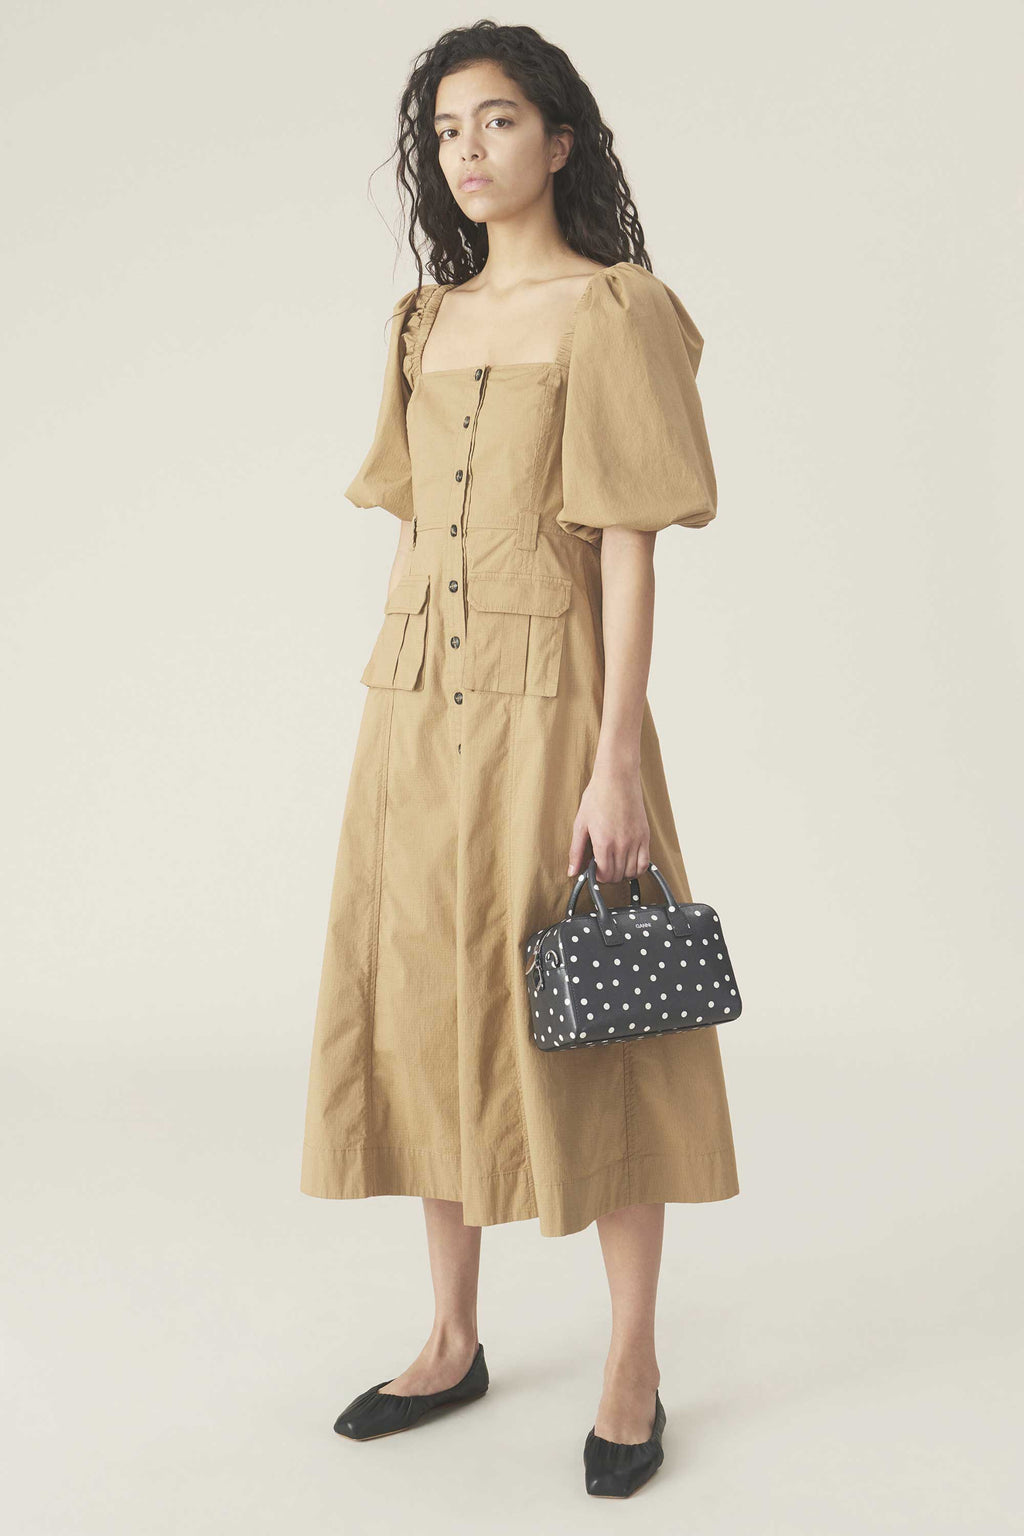 RIPSTOP COTTON CHINO PUFF SLEEVE DRESS - TAN